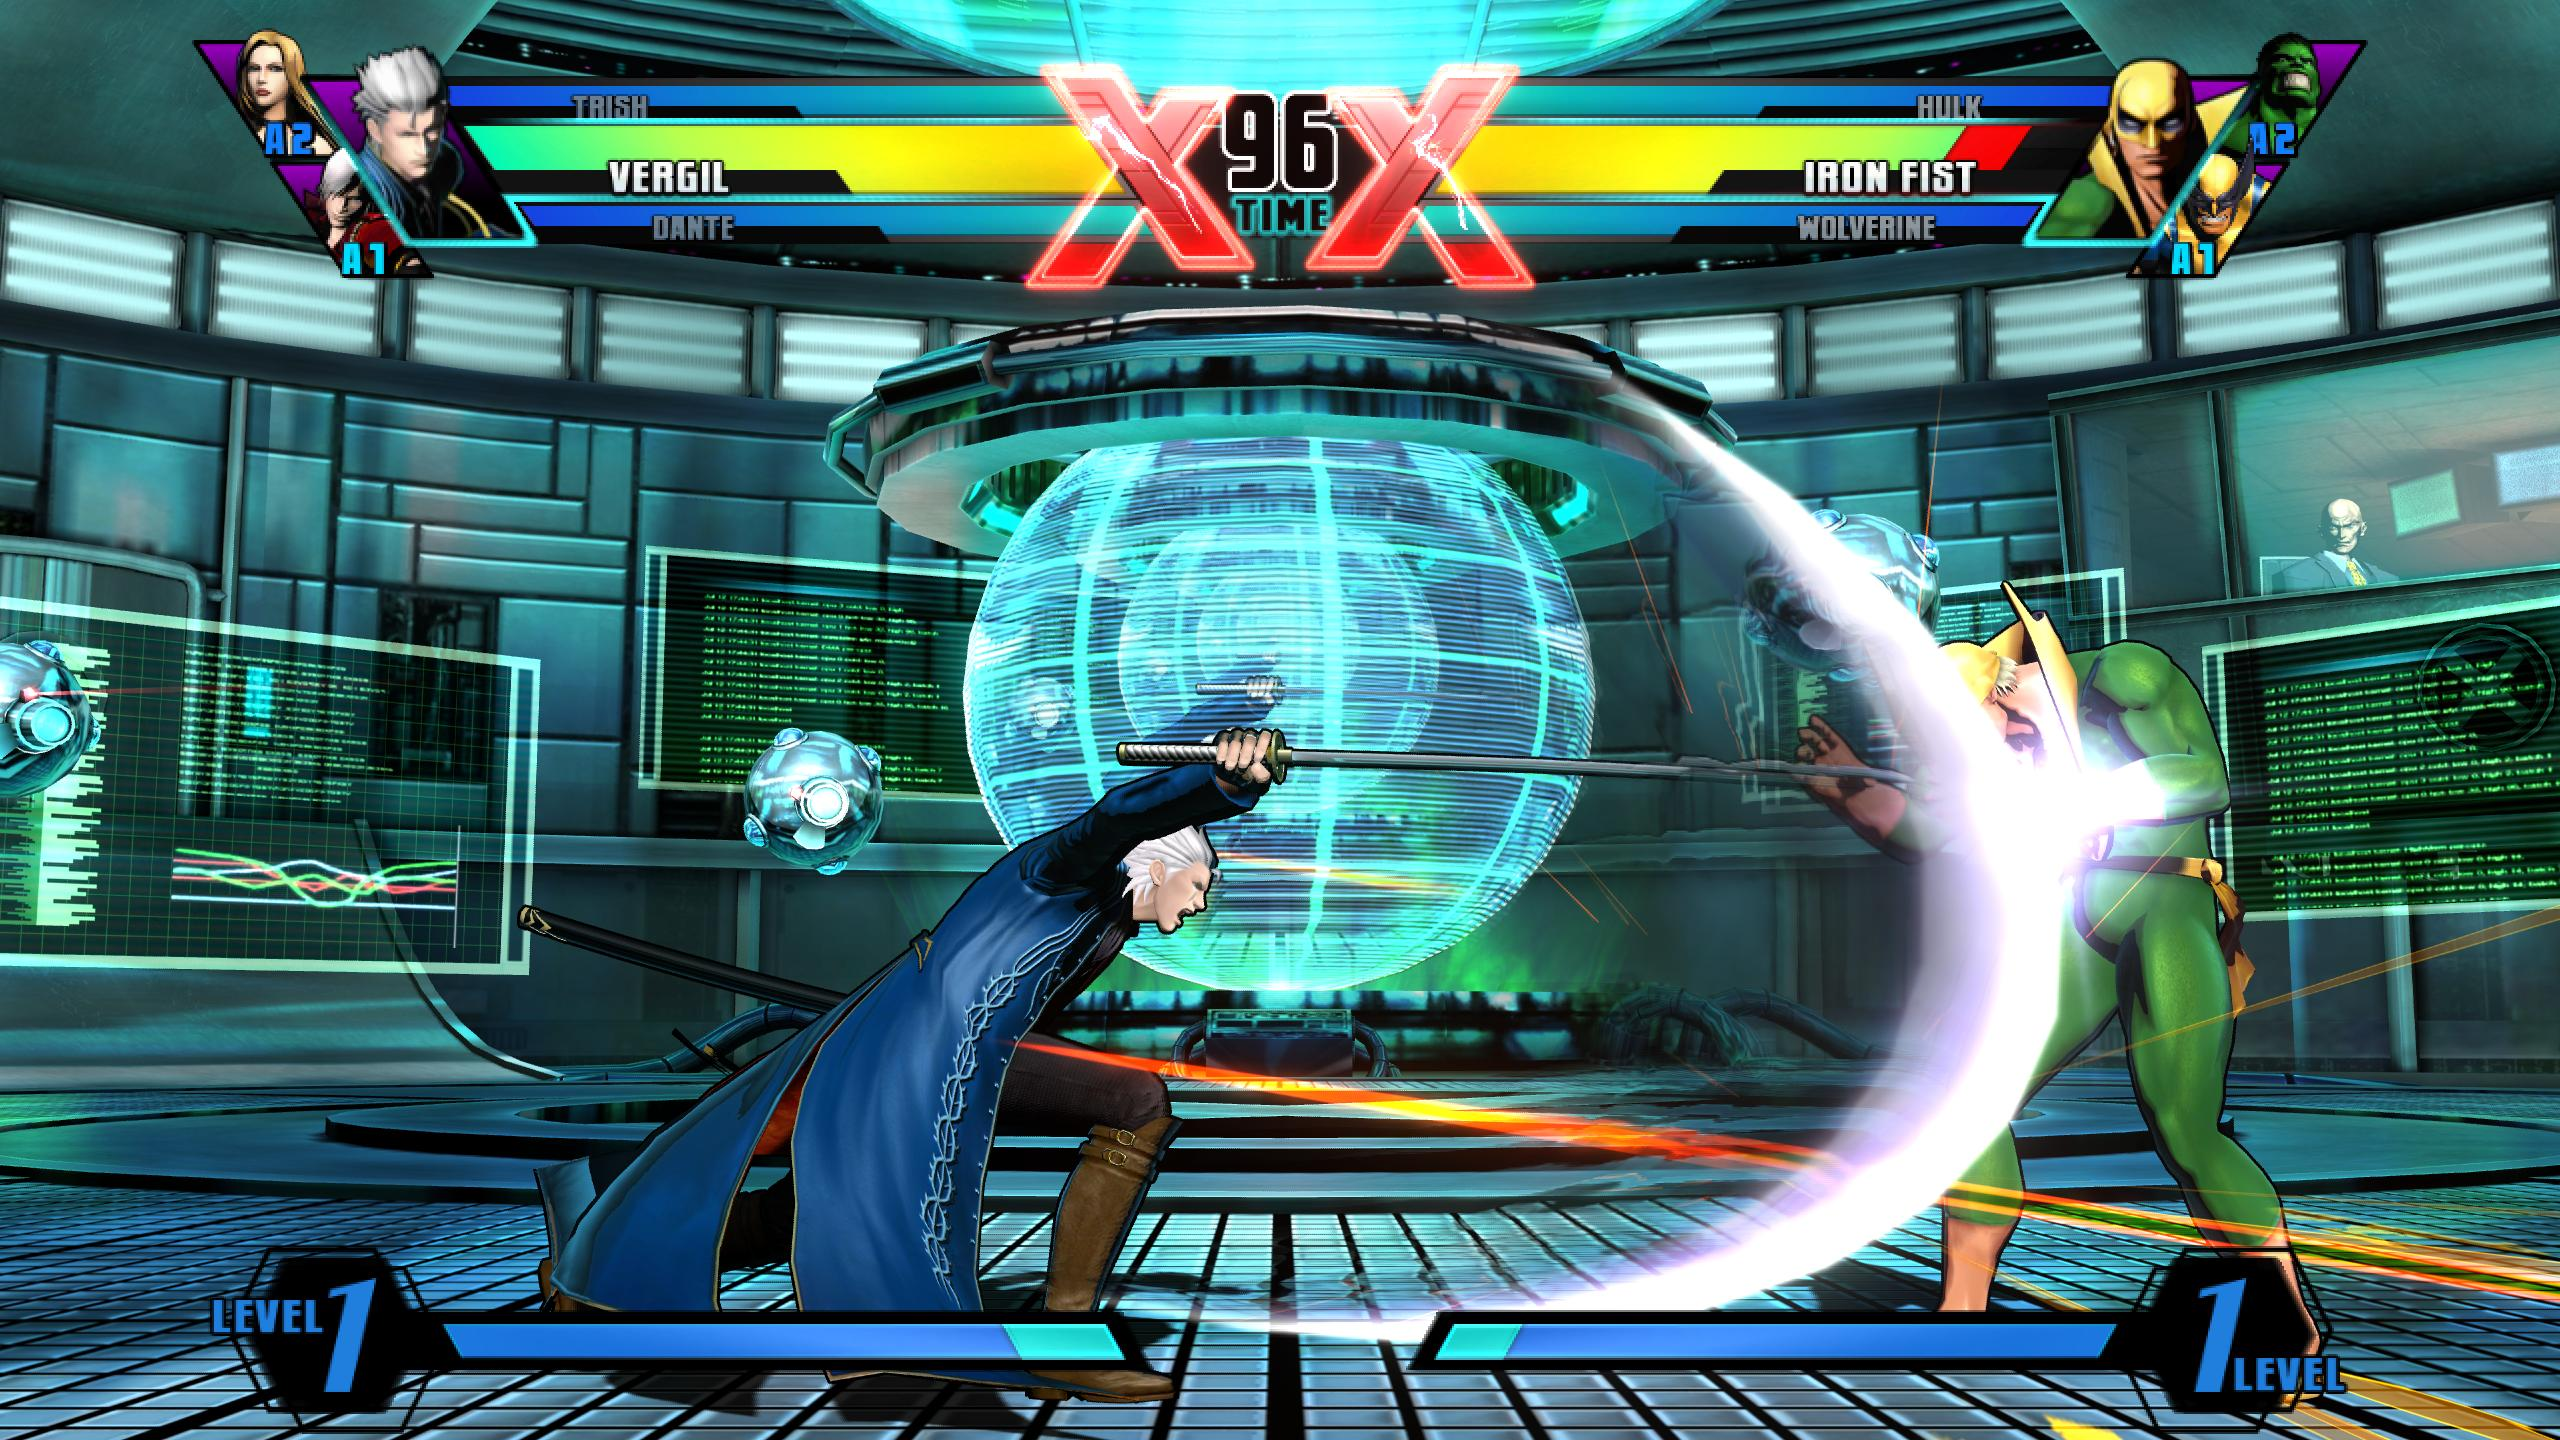 Vergil dans Ultimate Marvel vs. Capcom 3 6150580471_a639936849_o